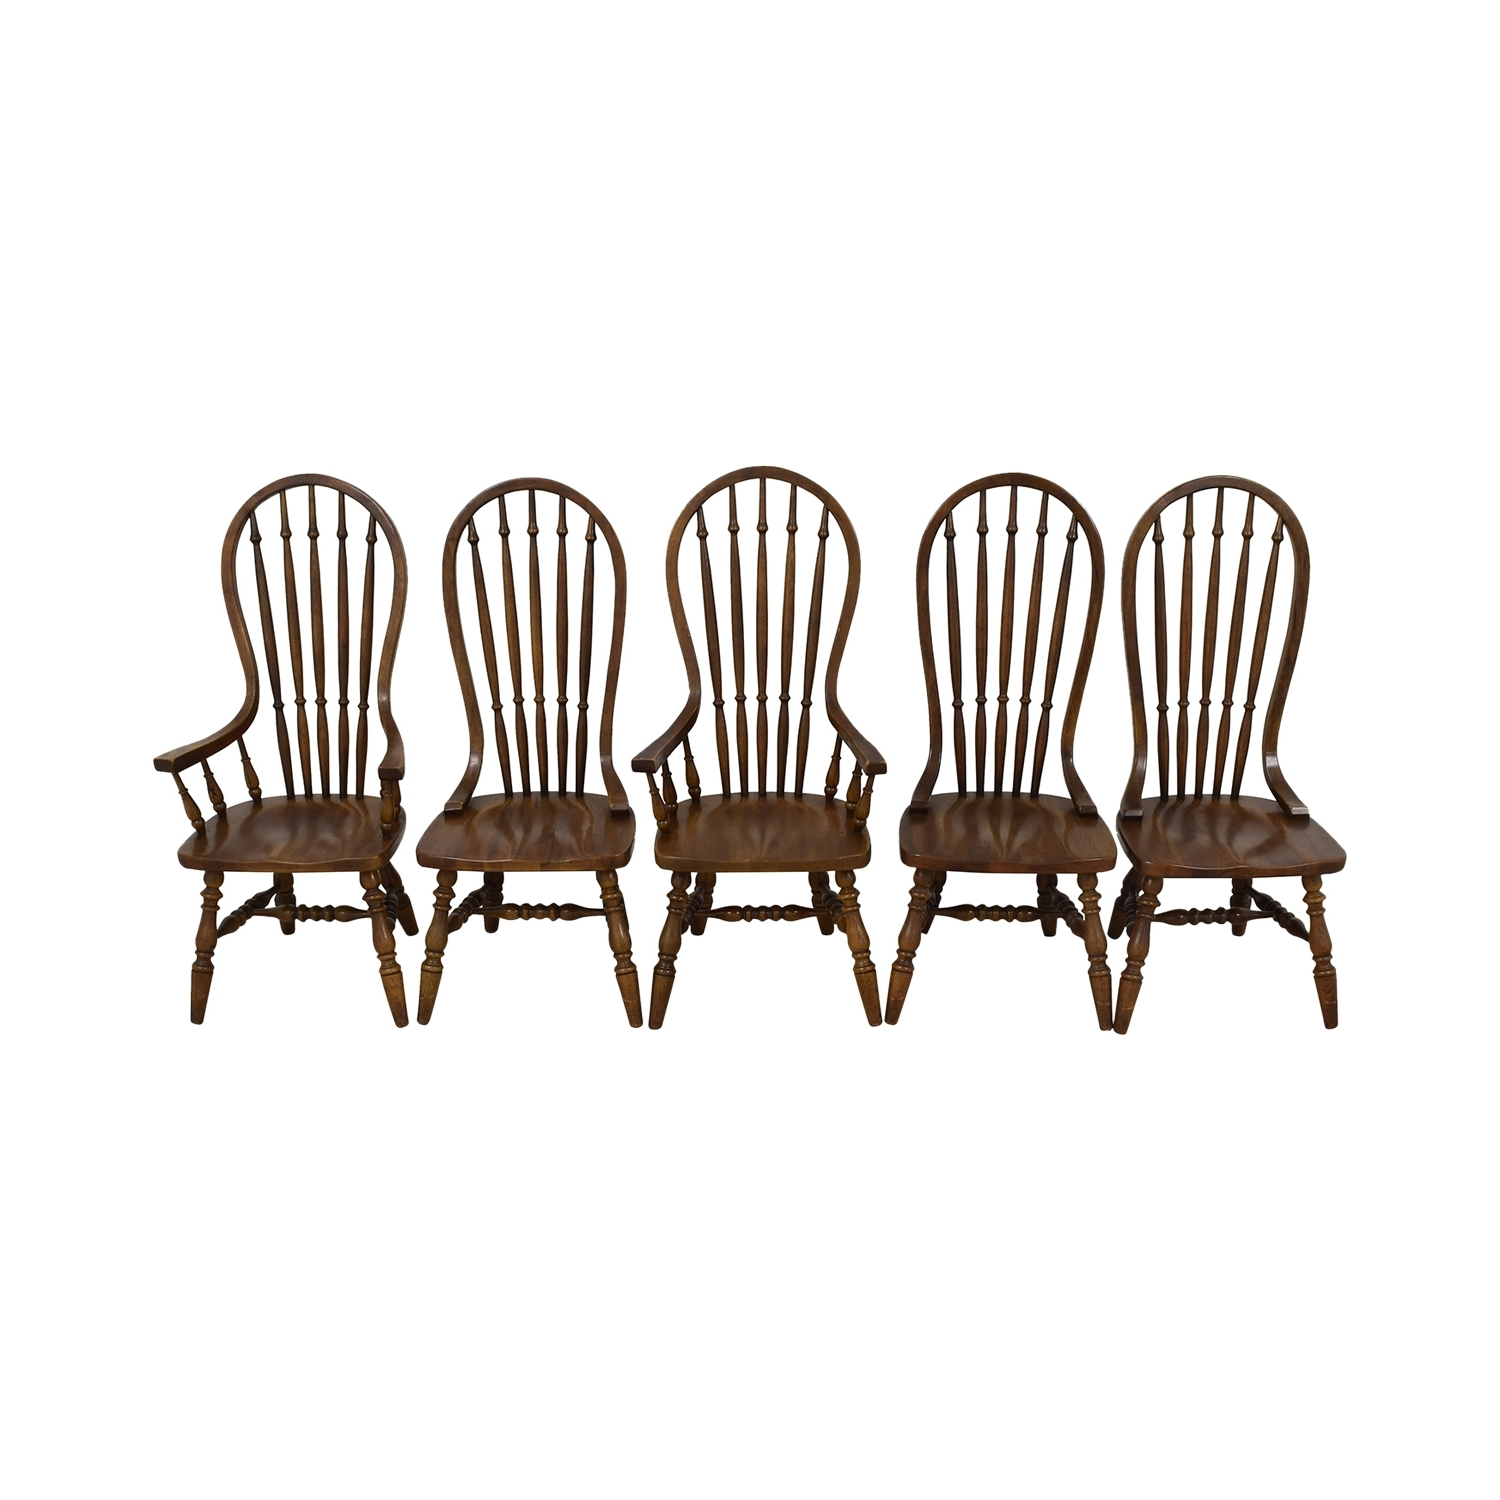 [%90% Off – Antique Oak Spindle Dining Chairs / Chairs Throughout Most Recent Second Hand Oak Dining Chairs|Second Hand Oak Dining Chairs Intended For Latest 90% Off – Antique Oak Spindle Dining Chairs / Chairs|Fashionable Second Hand Oak Dining Chairs With Regard To 90% Off – Antique Oak Spindle Dining Chairs / Chairs|Fashionable 90% Off – Antique Oak Spindle Dining Chairs / Chairs In Second Hand Oak Dining Chairs%] (View 4 of 25)